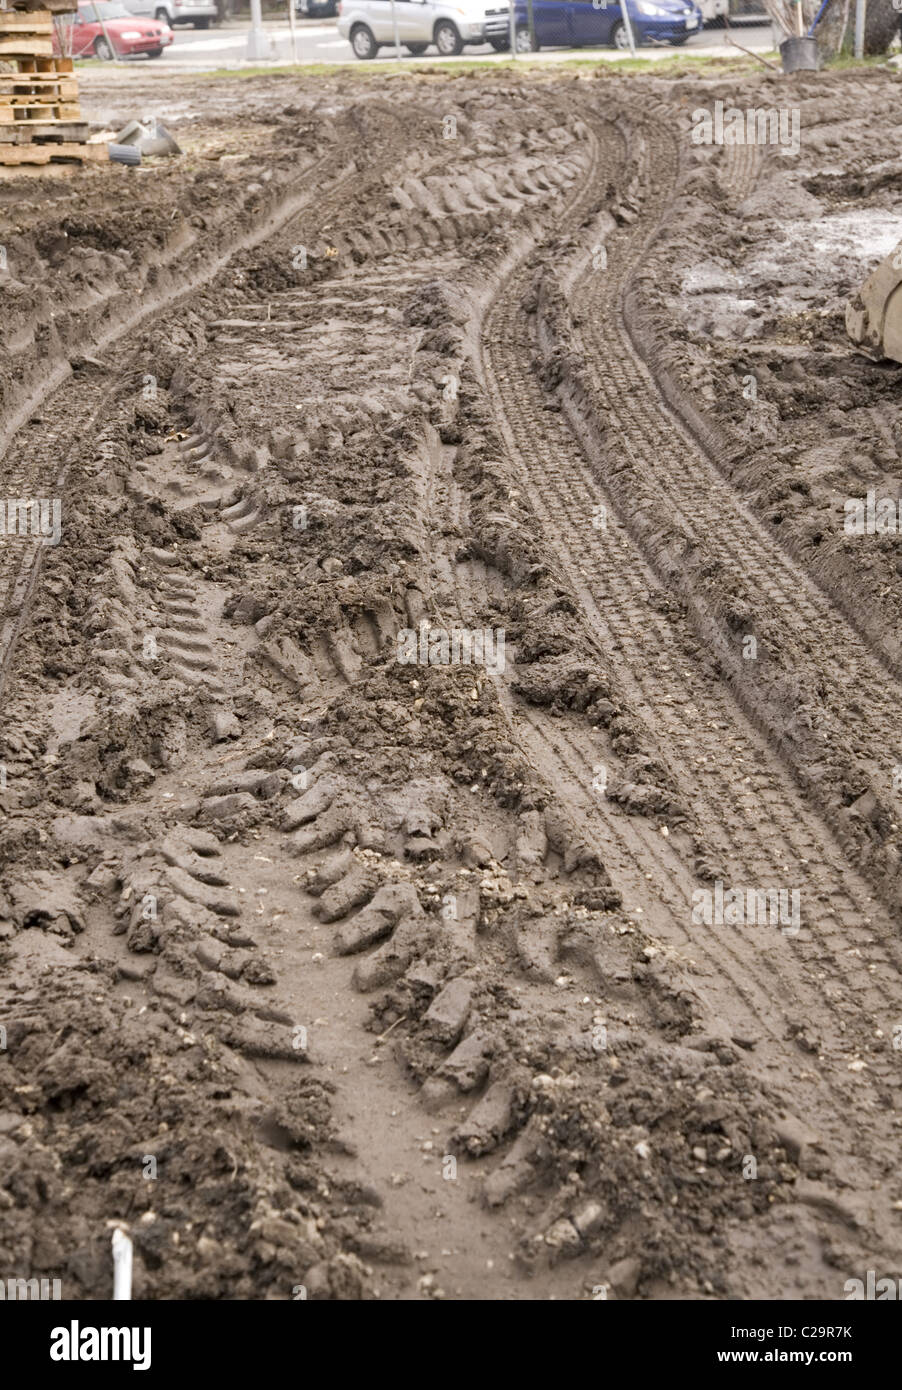 Tire tracks in the mud, storage lot, Brooklyn, NY. - Stock Image